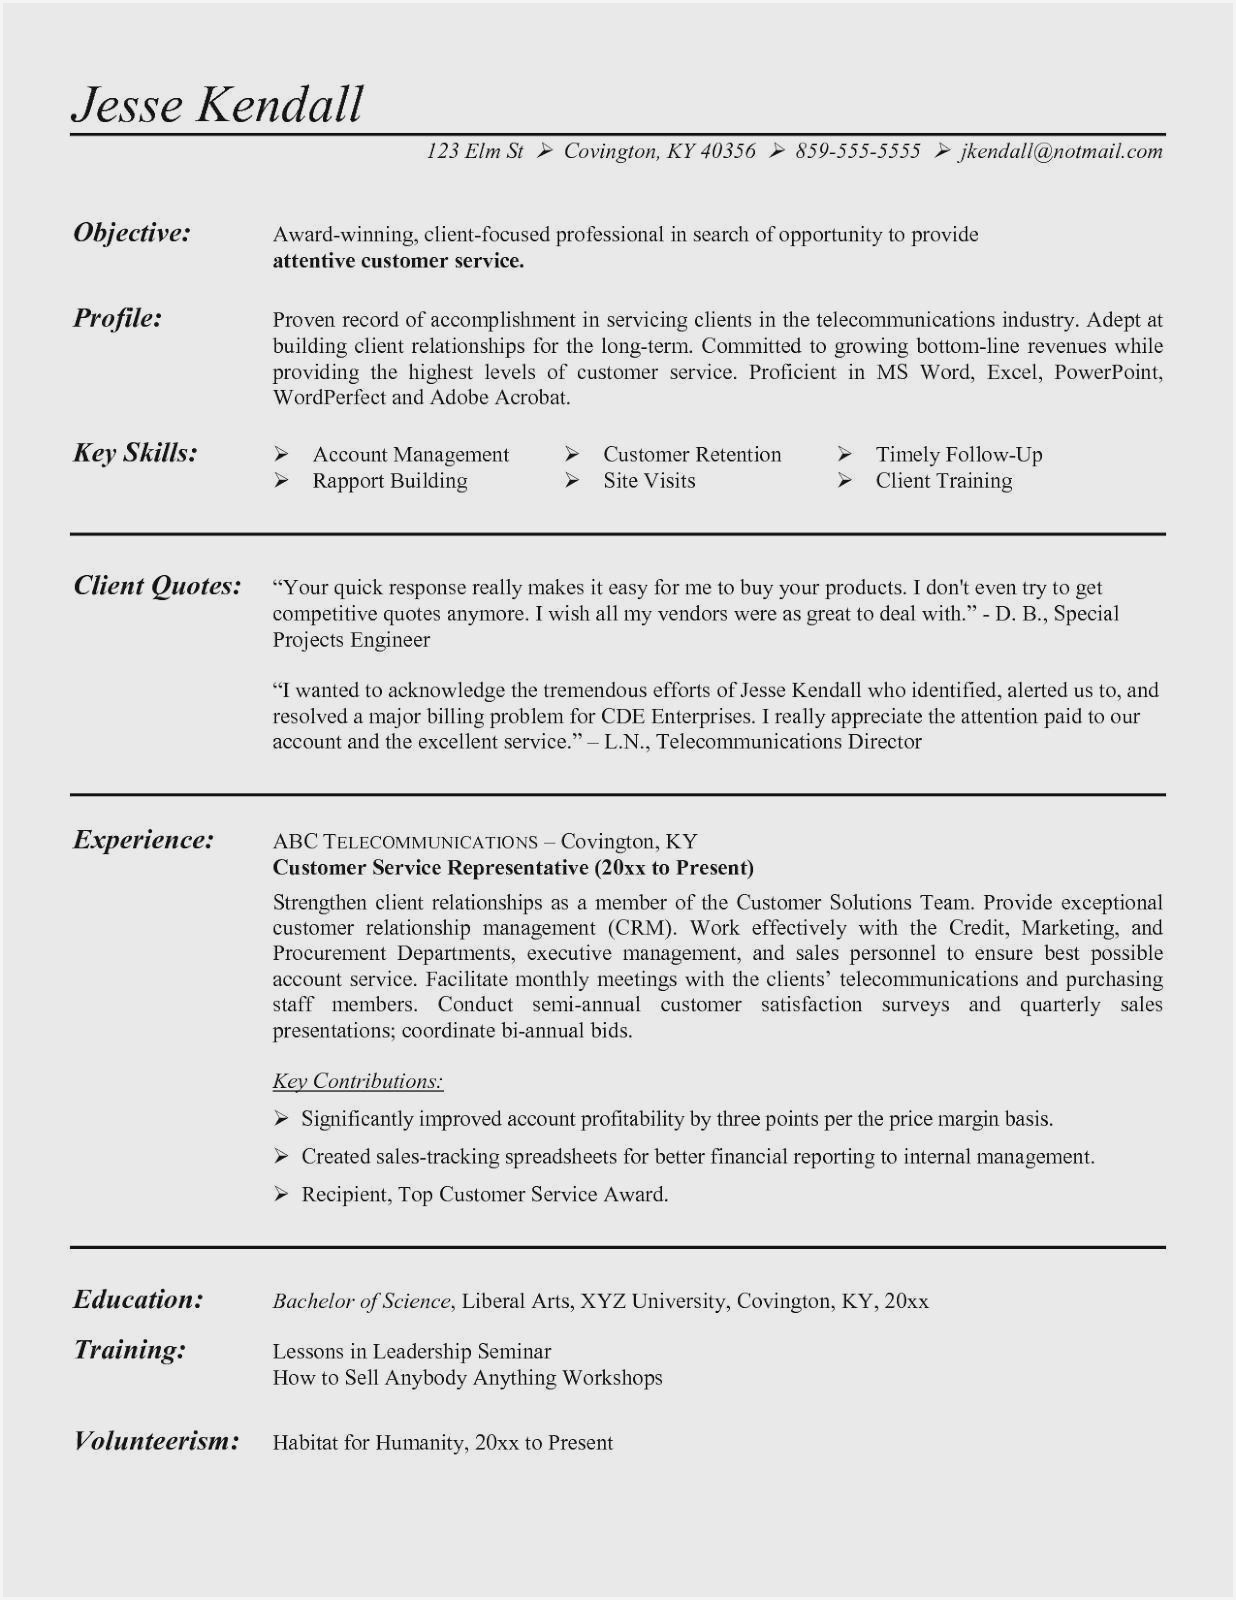 executive resume template word sample best cv samples exchange student adjunct instructor Resume Executive Resume Template Word